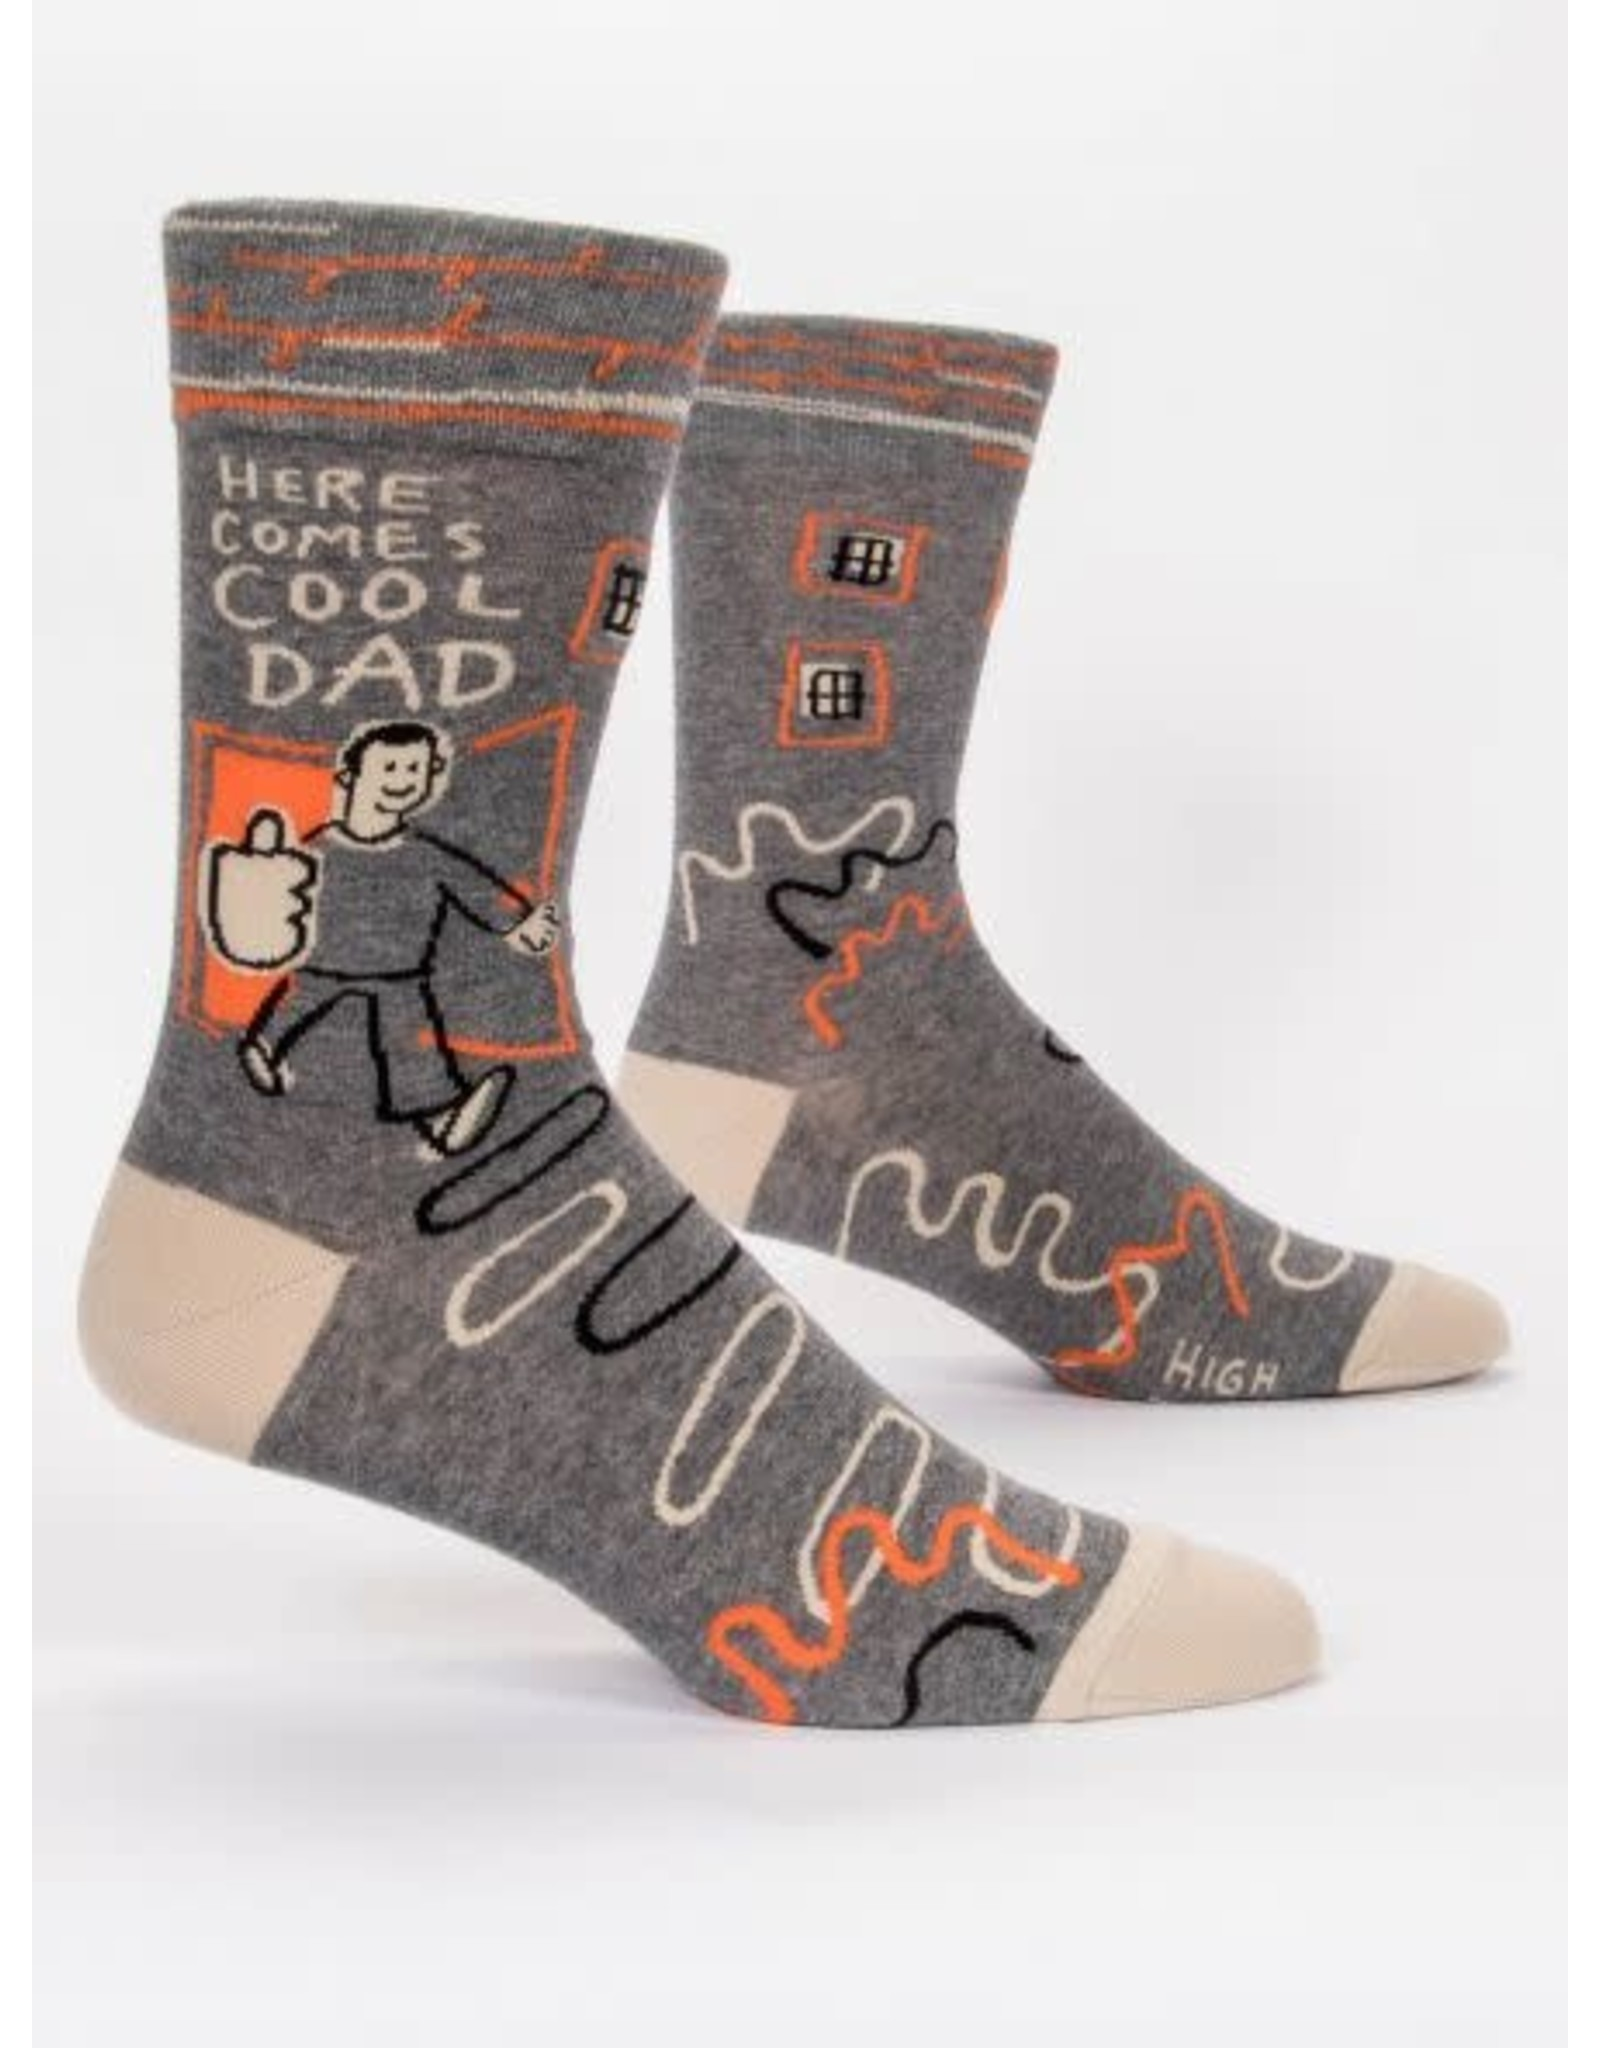 BQ Mens Sassy Socks - Cool Dad